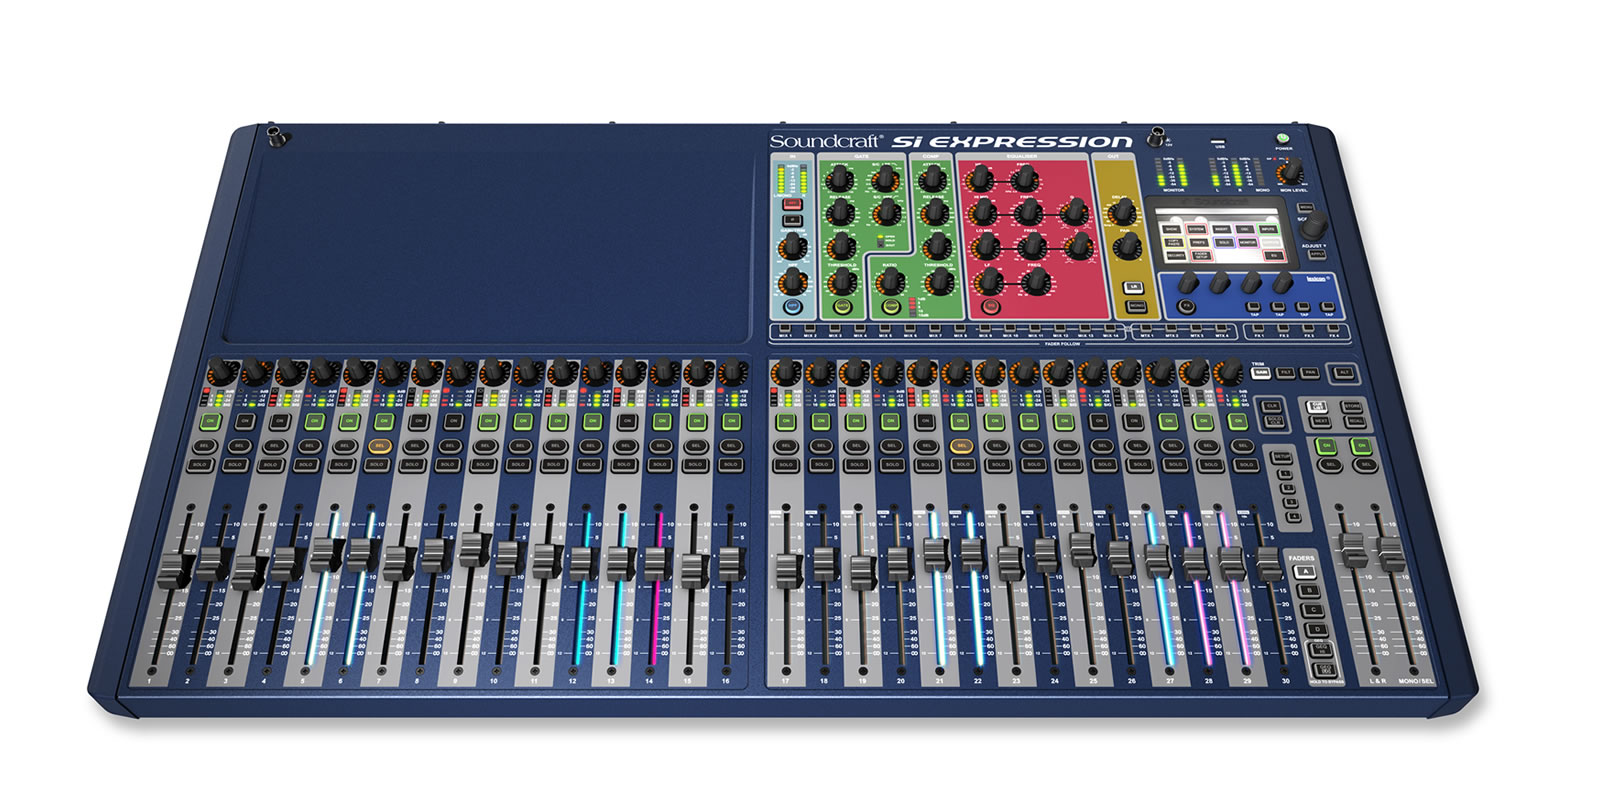 Si Expression 3 Soundcraft Professional Audio Mixers Digital Platform Front Tiny Square